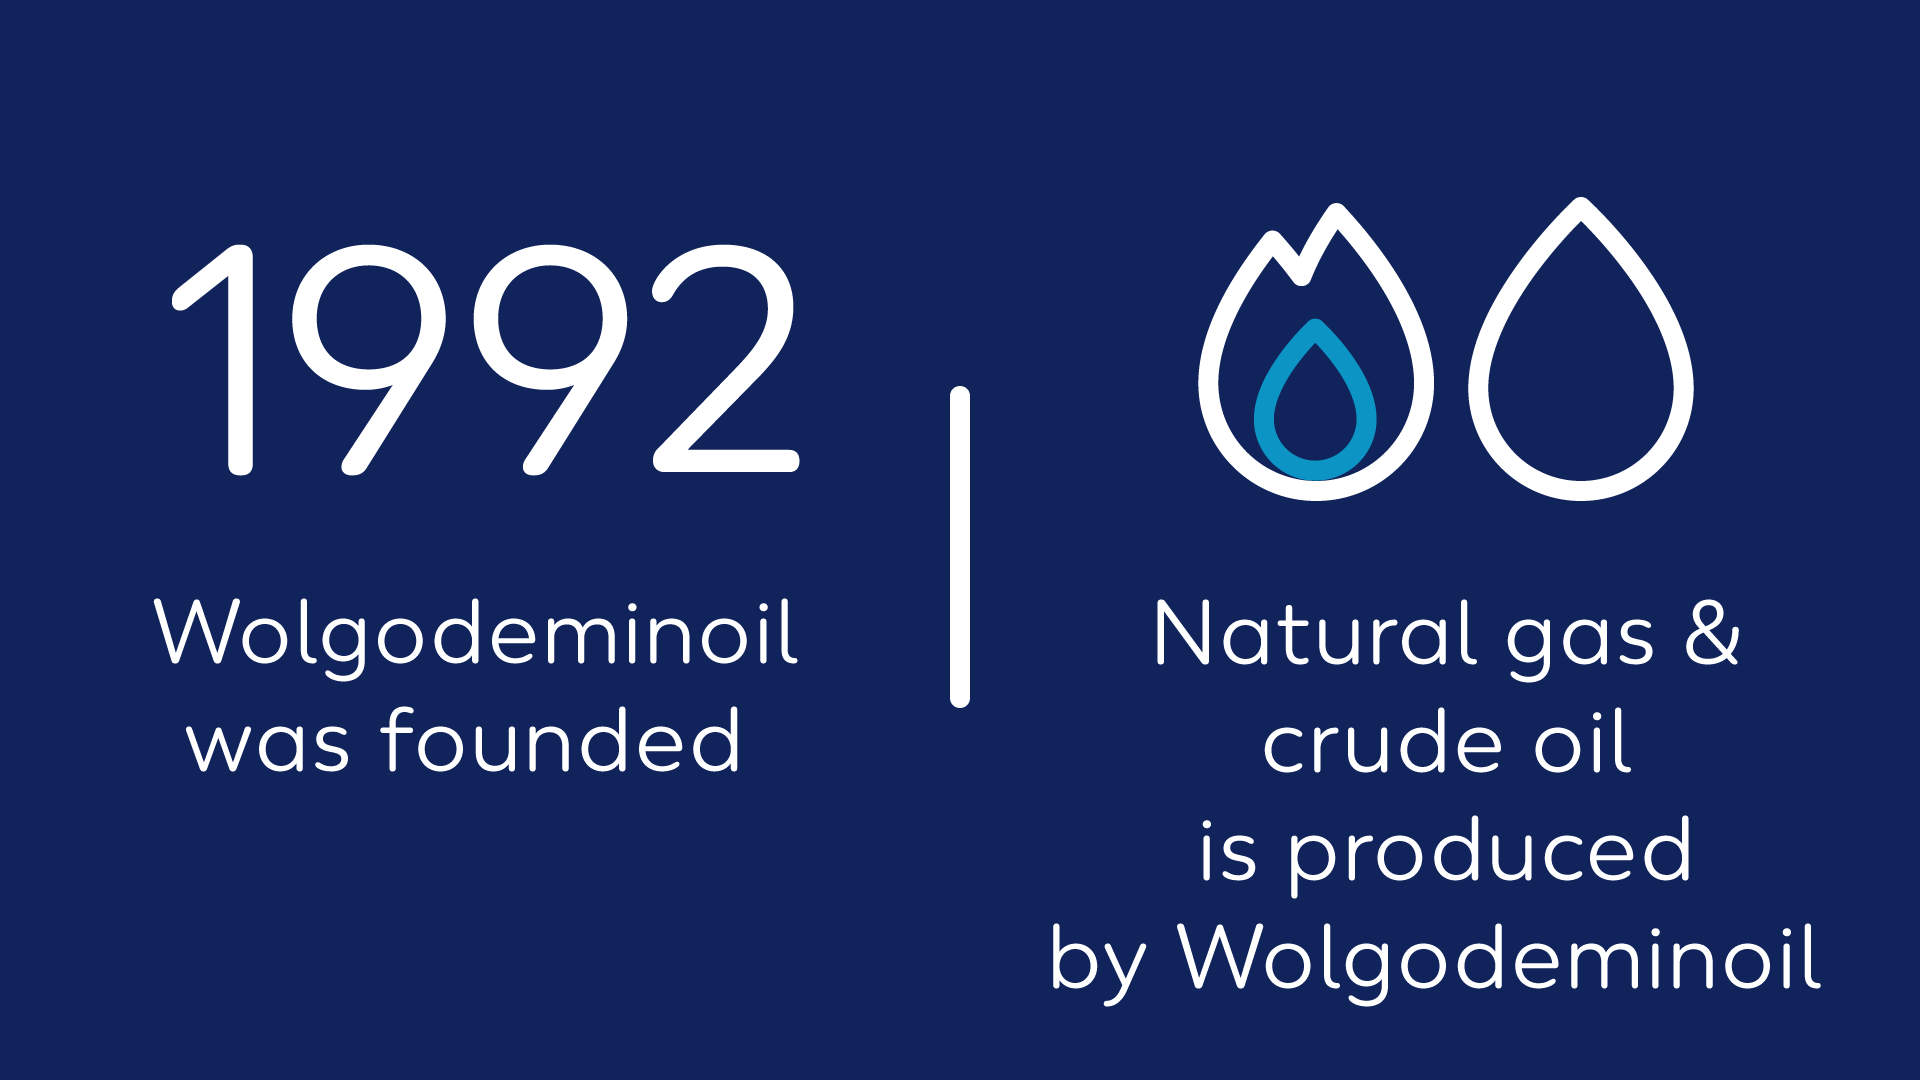 Wintershall Dea Wolgodeminoil Quick Fact